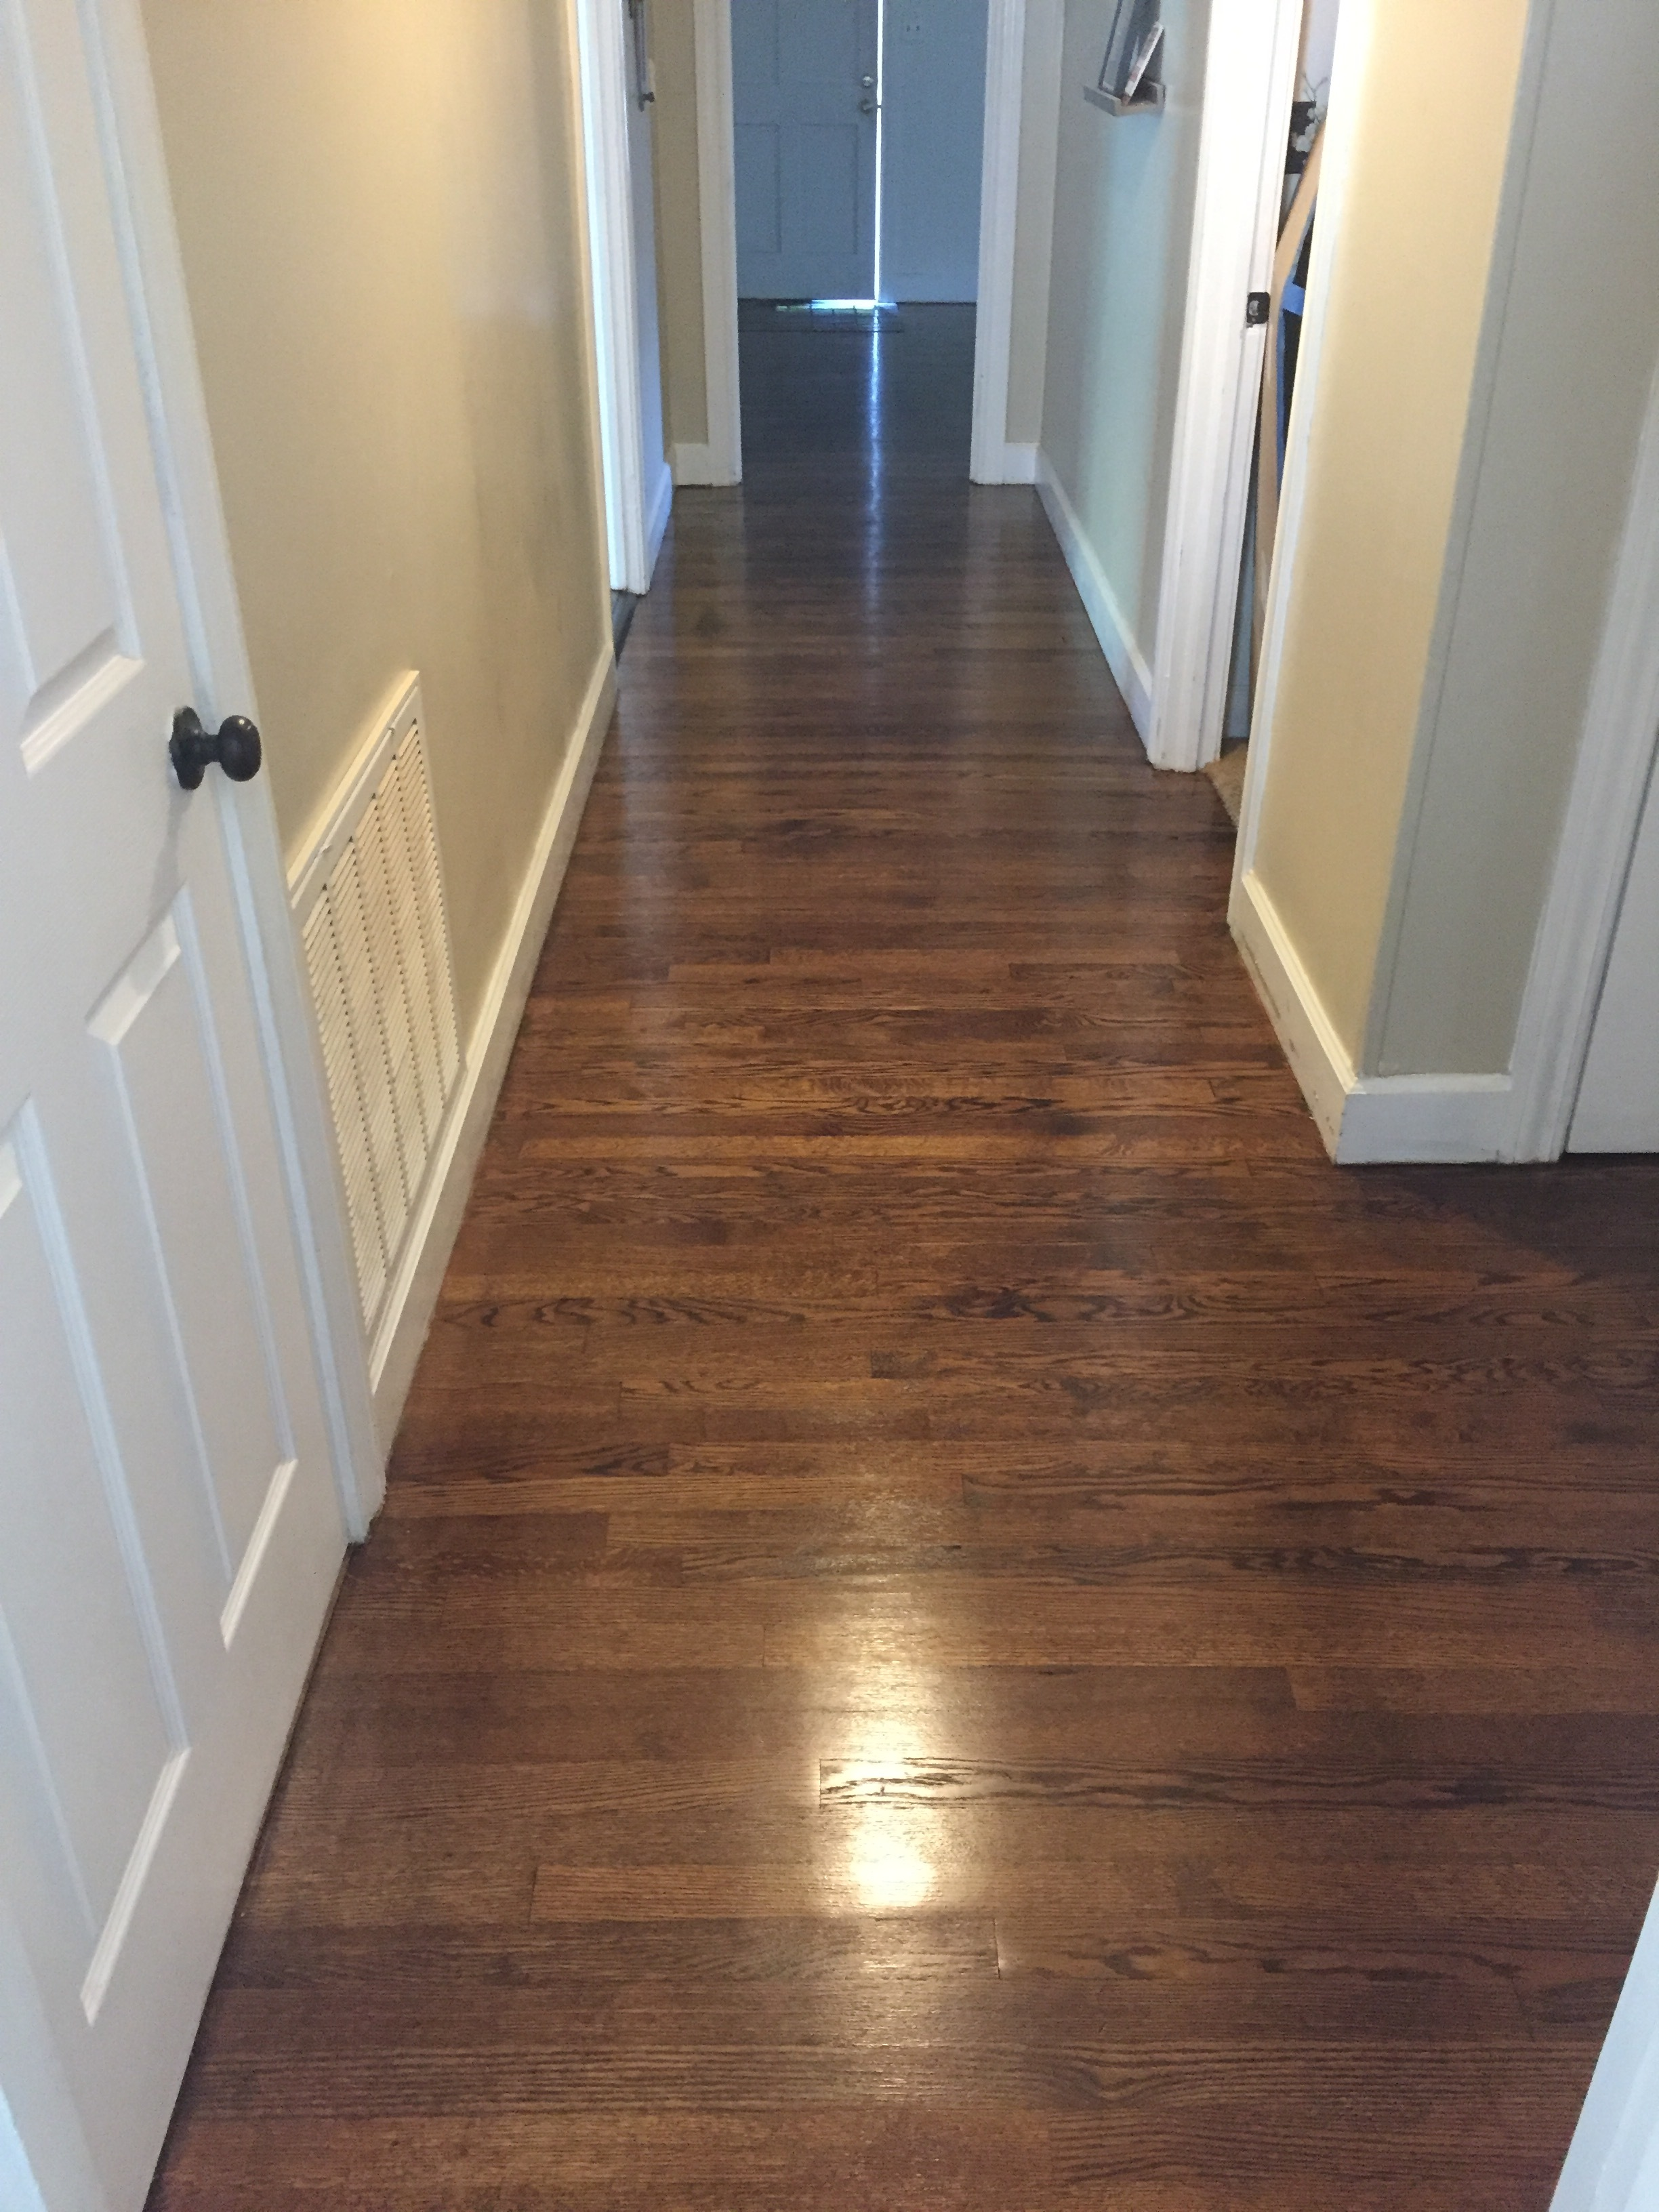 This it the view down the hallway(towards the front door!)